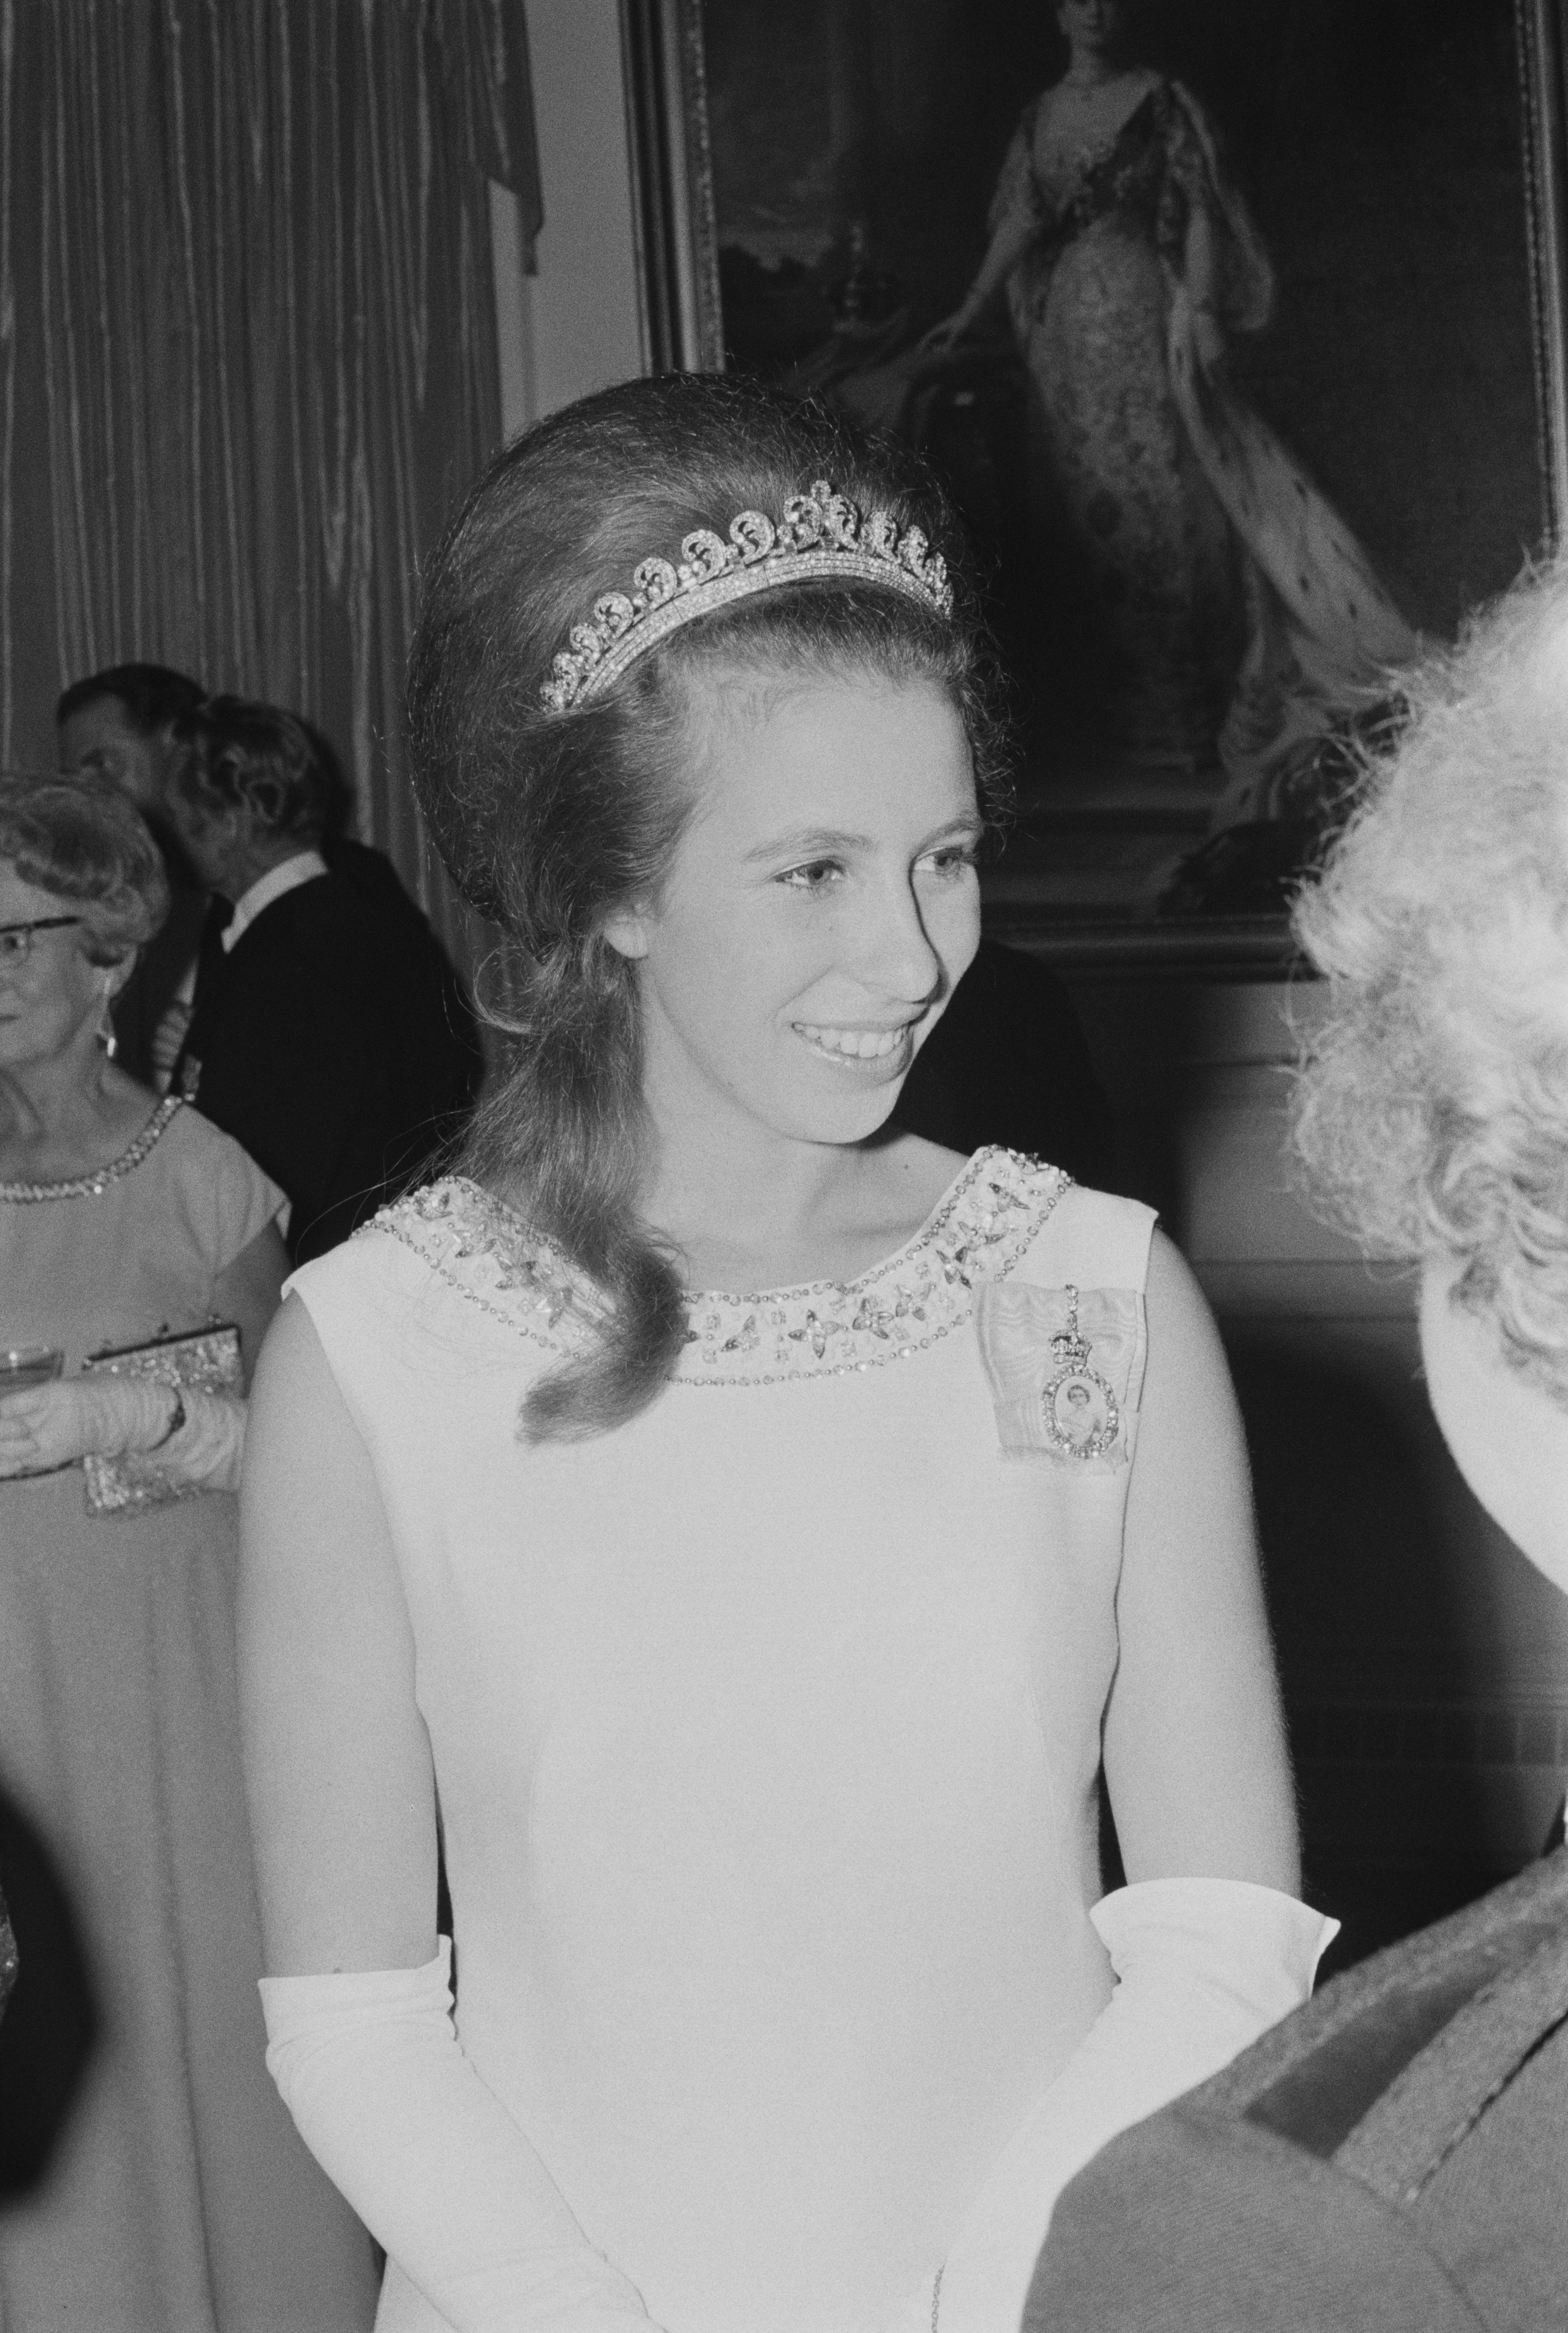 Princess Anne attends a formal event during a visit to New Zealand on March 16, 1970 | Photo: Getty Images